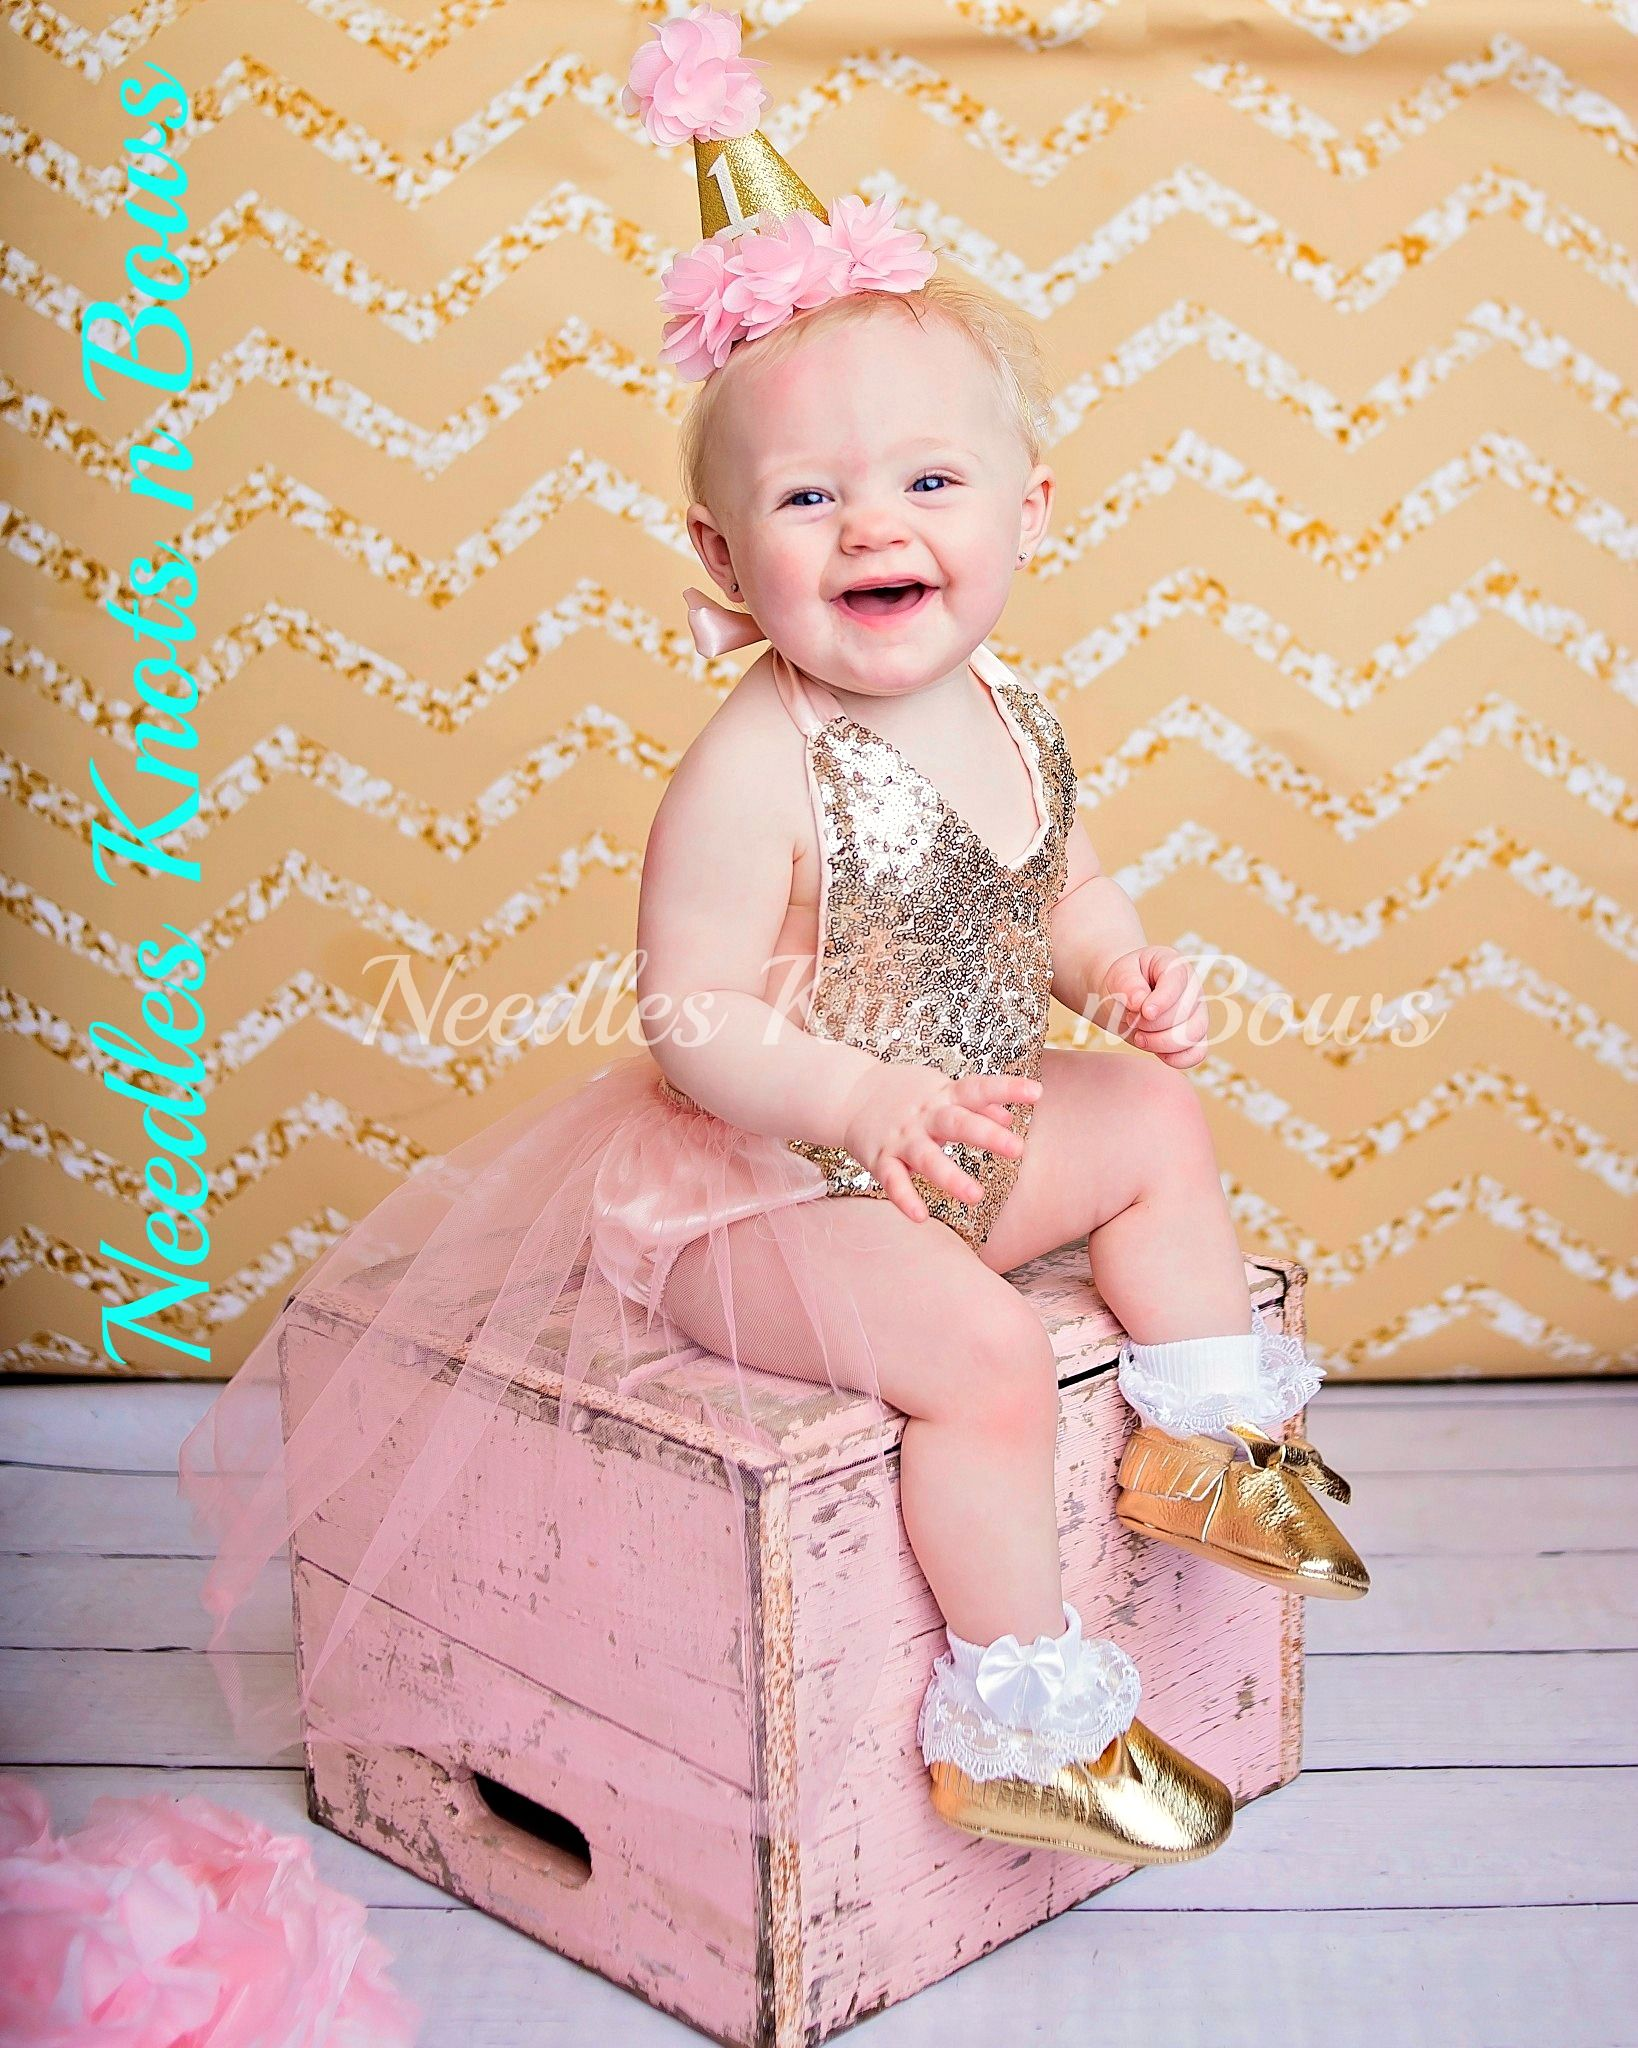 Girls Sequin Tulle Romper Baby Girls Pink Gold Birthday Romper From Needles Knots N Bows In 2021 1st Birthday Outfit Girl Cake Smash Outfit Girl First Birthday Outfit Girl